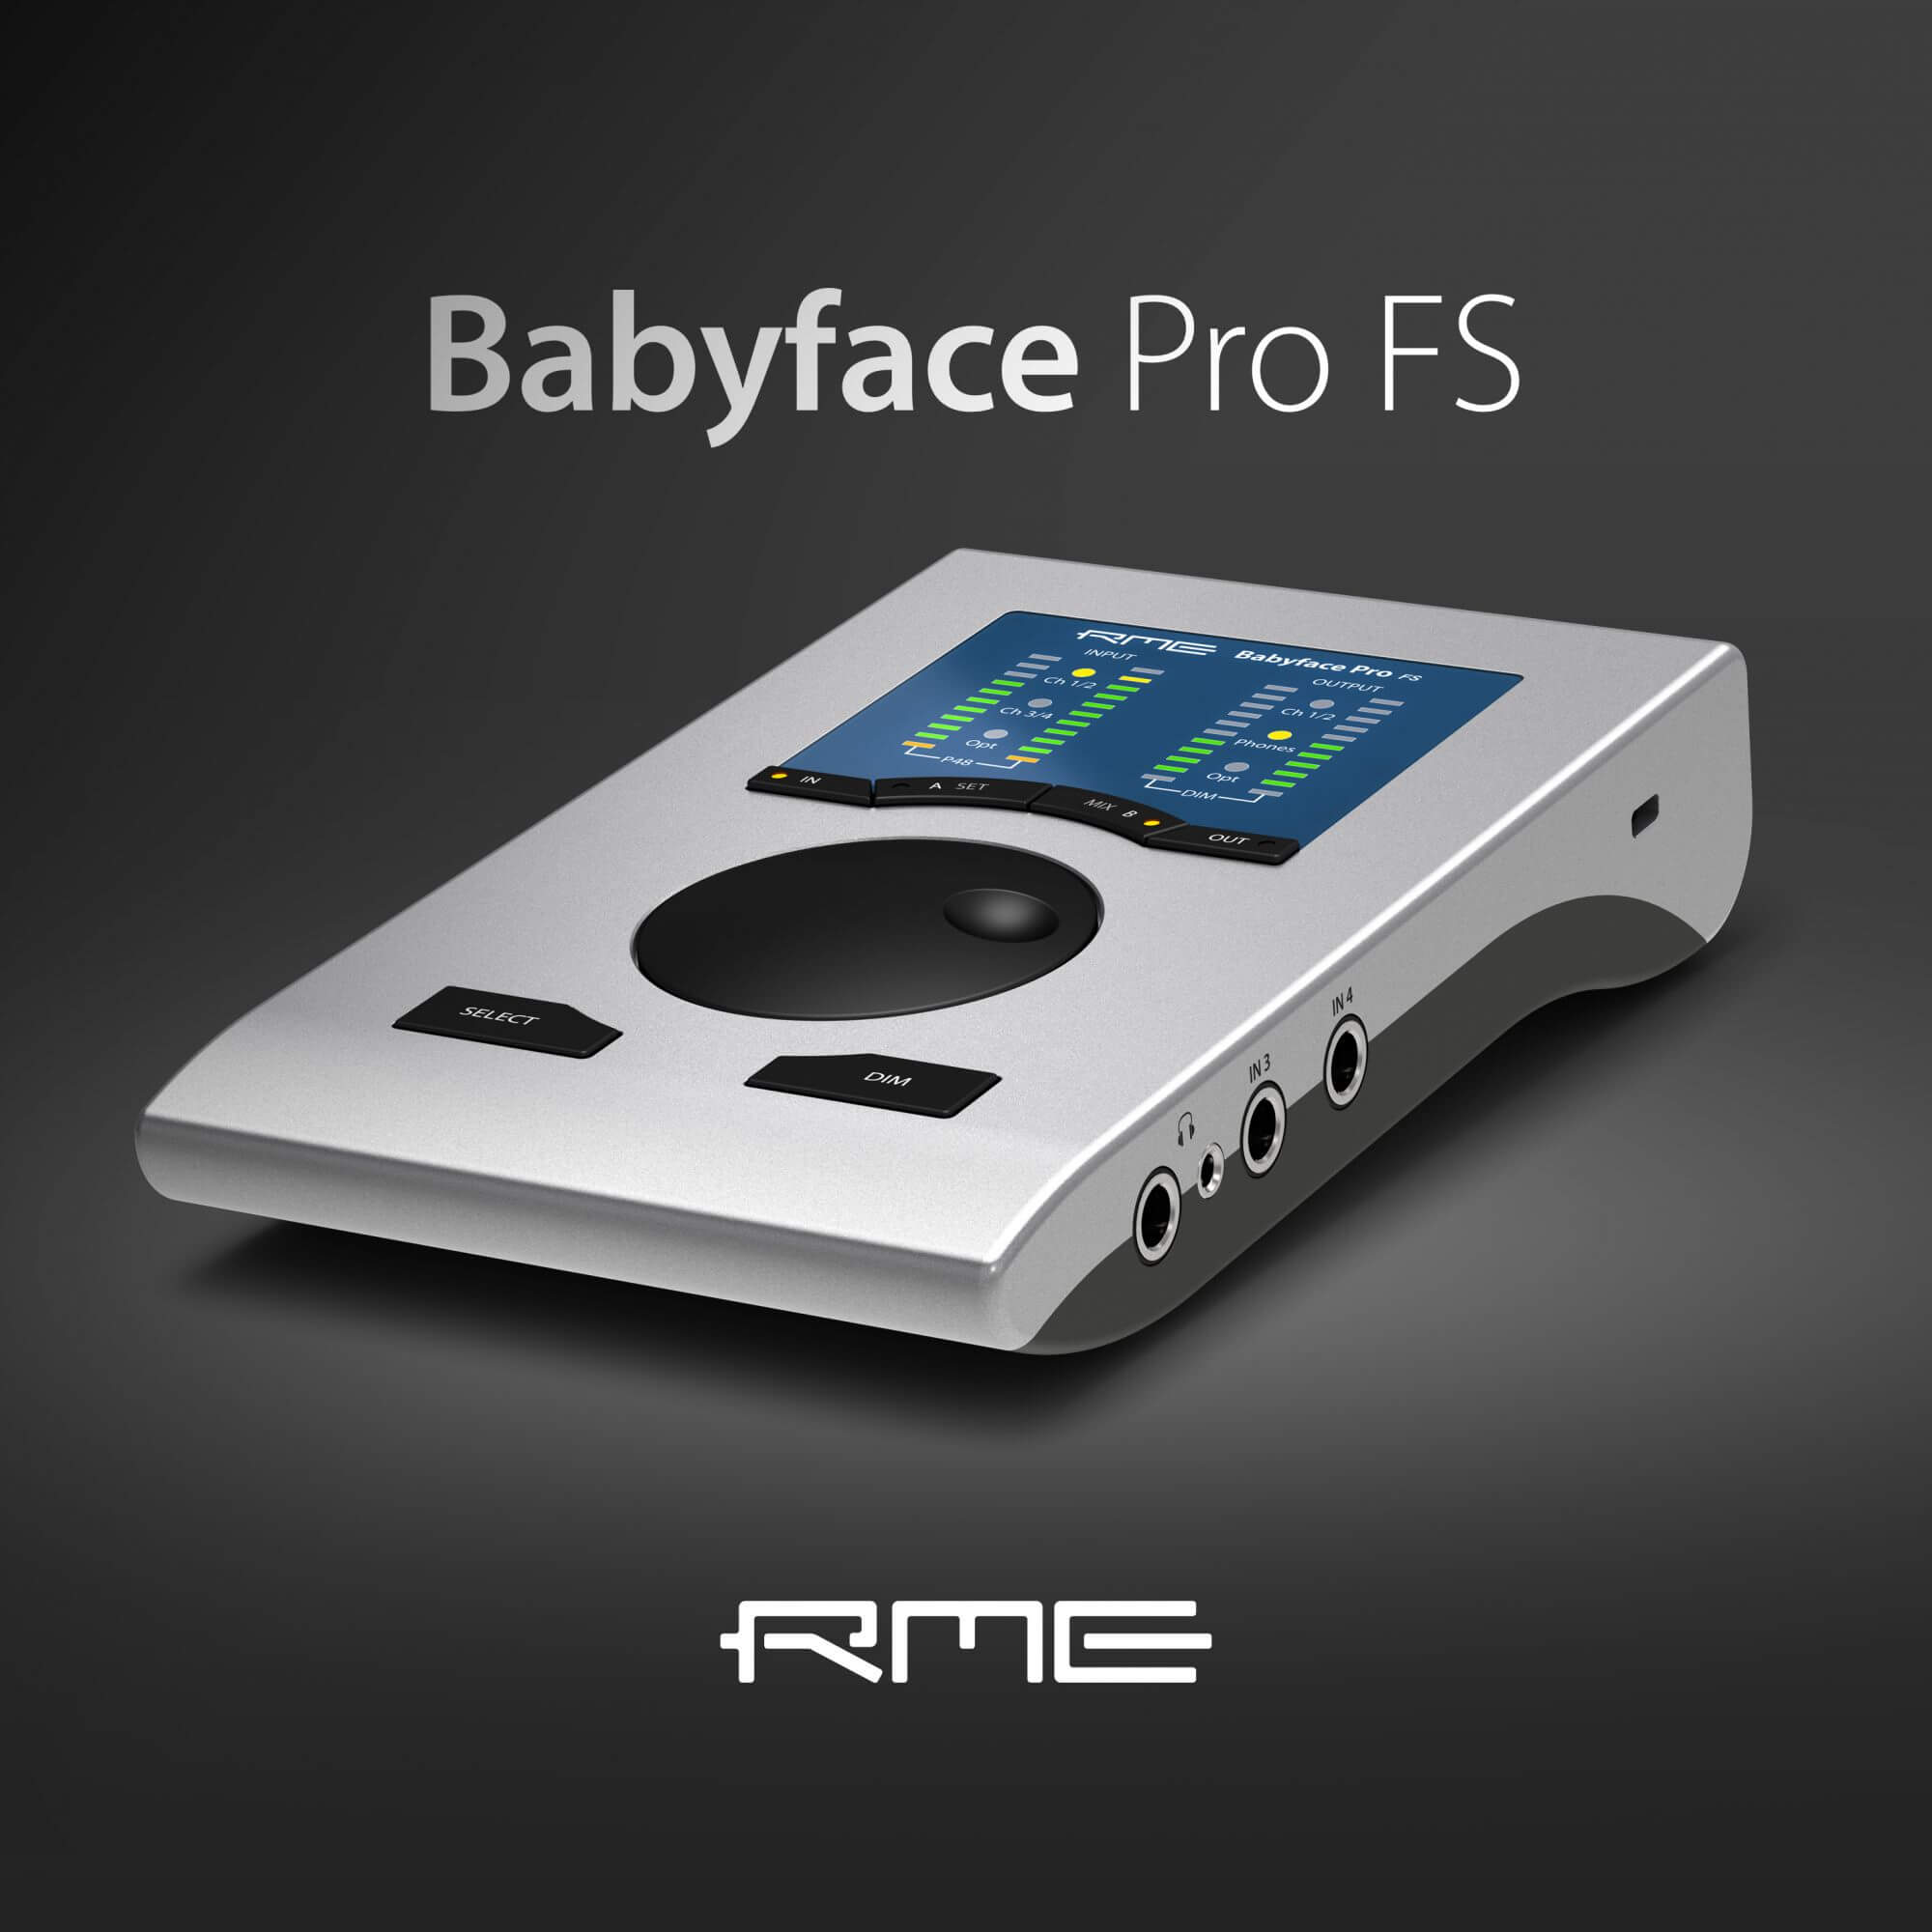 The new Babyface Pro FS